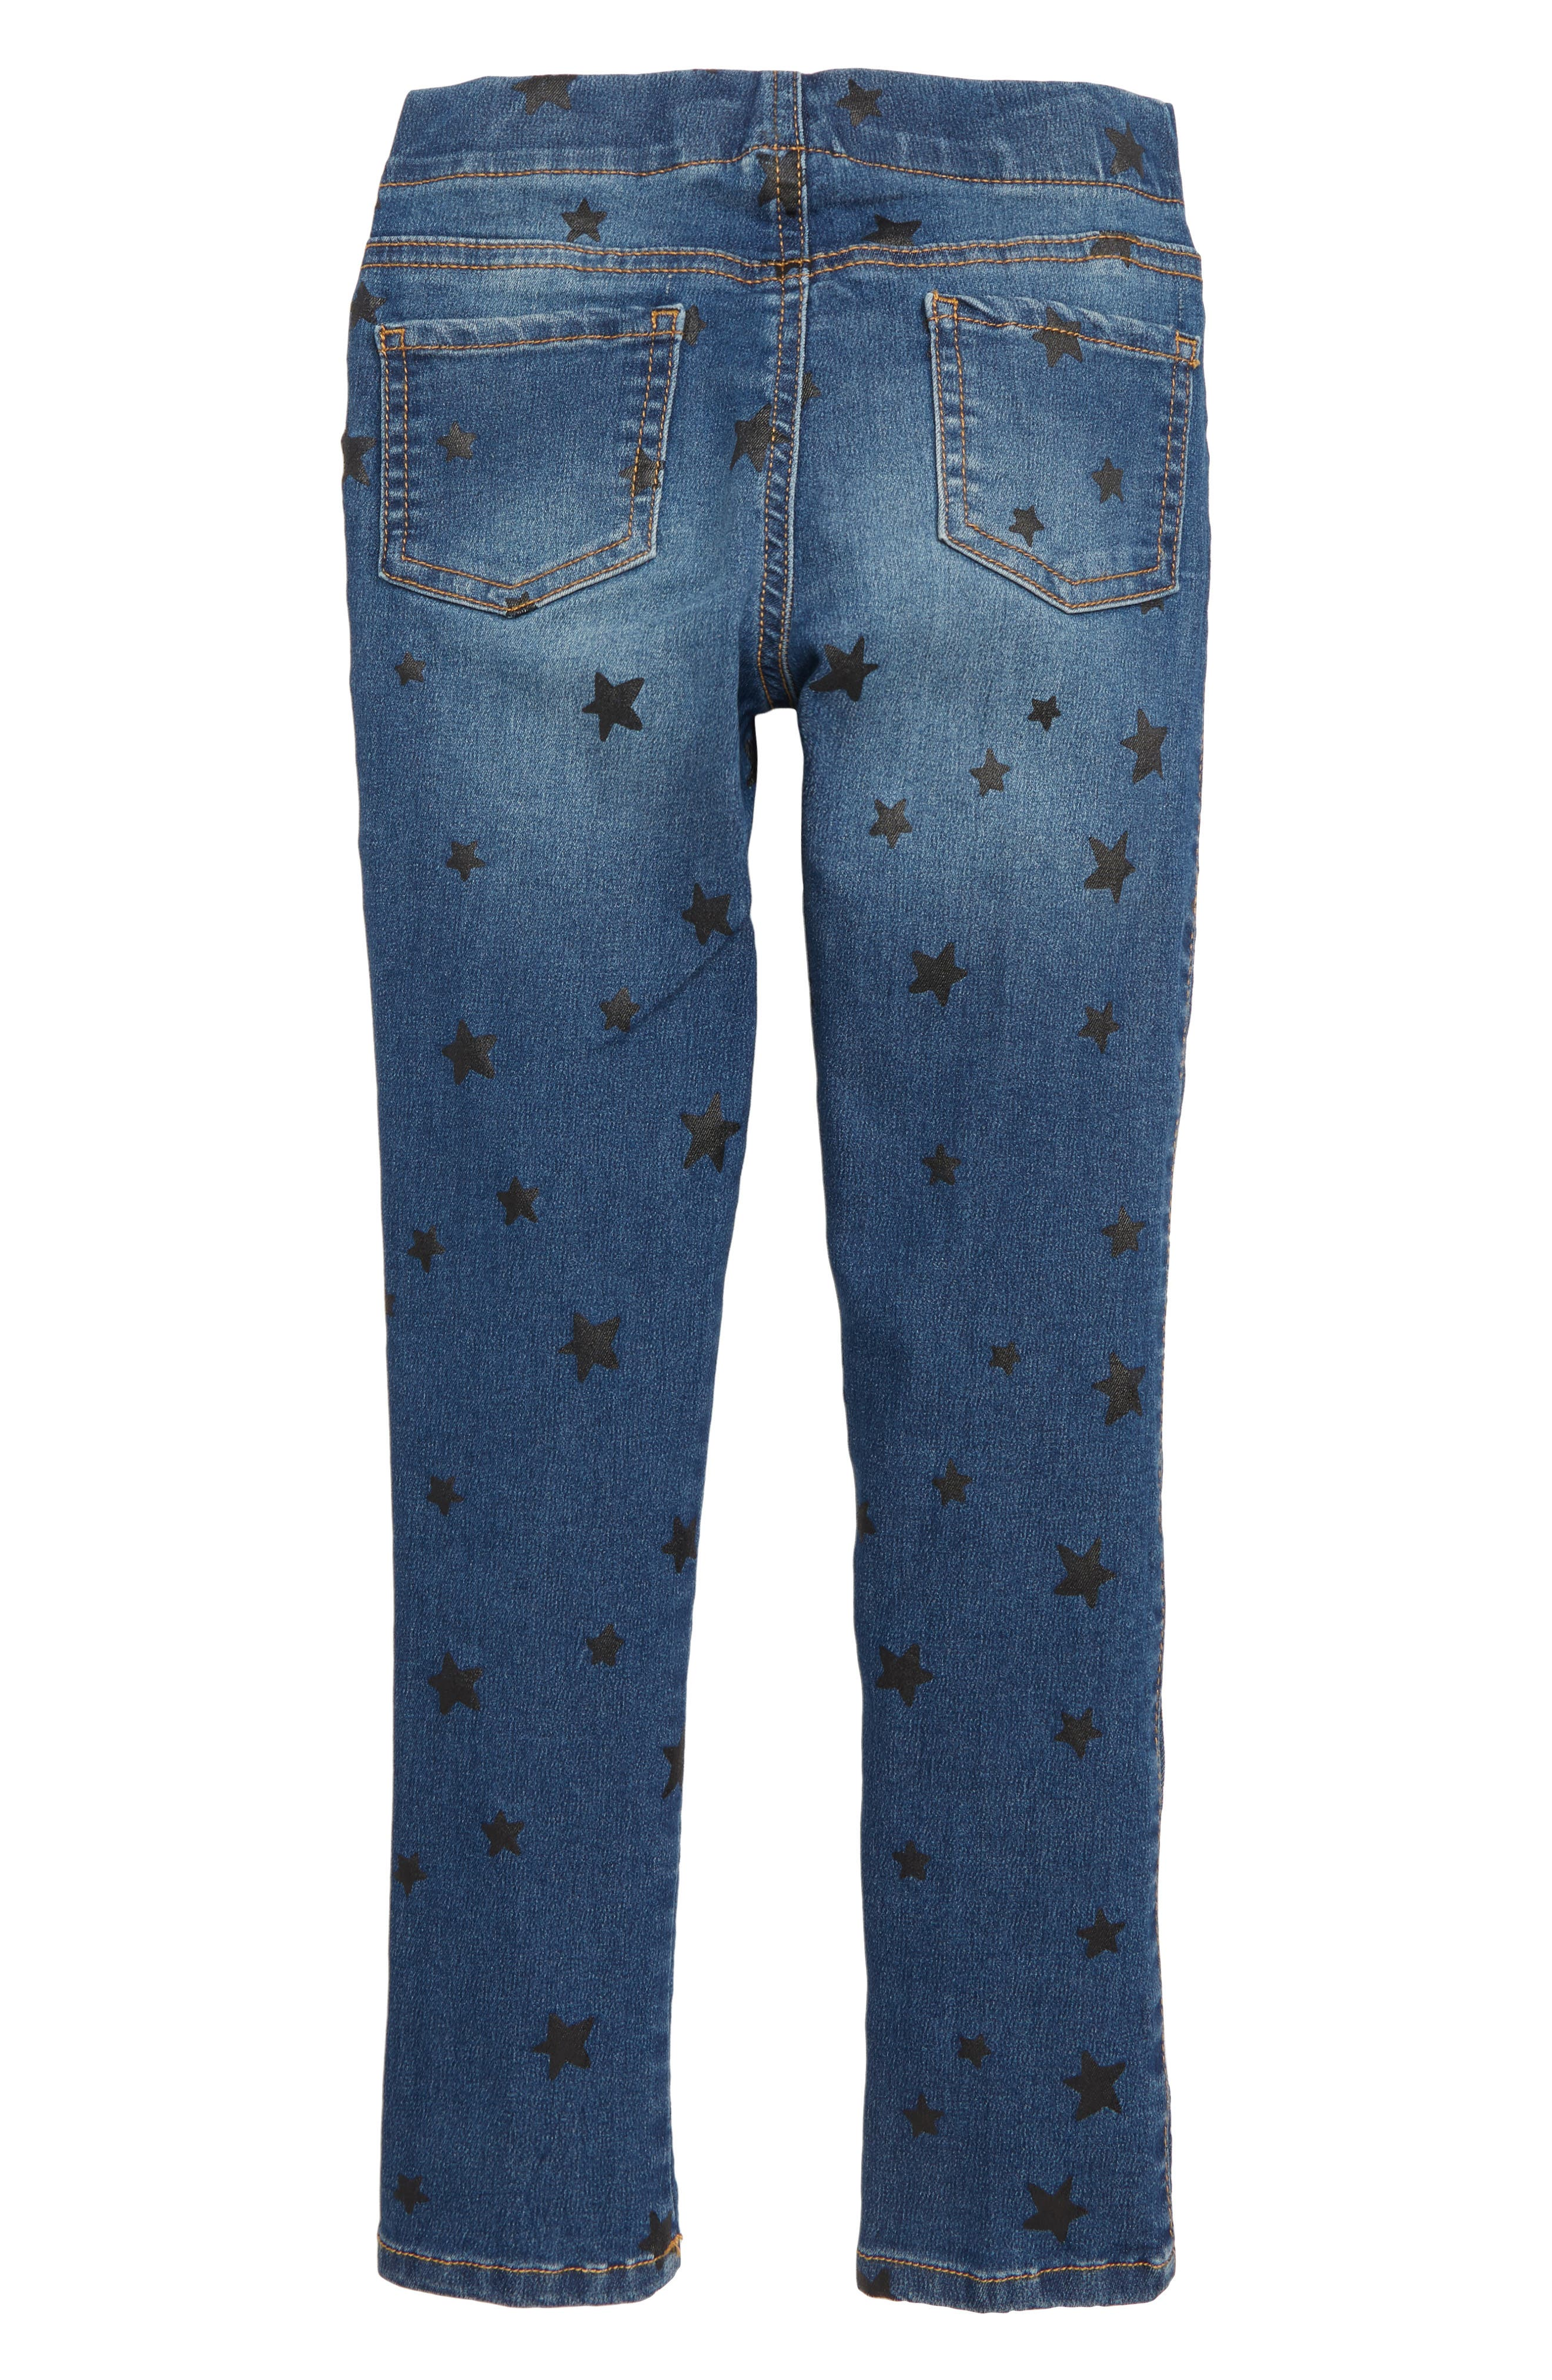 Print Jeggings,                             Alternate thumbnail 2, color,                             INDIGO WASH STARS